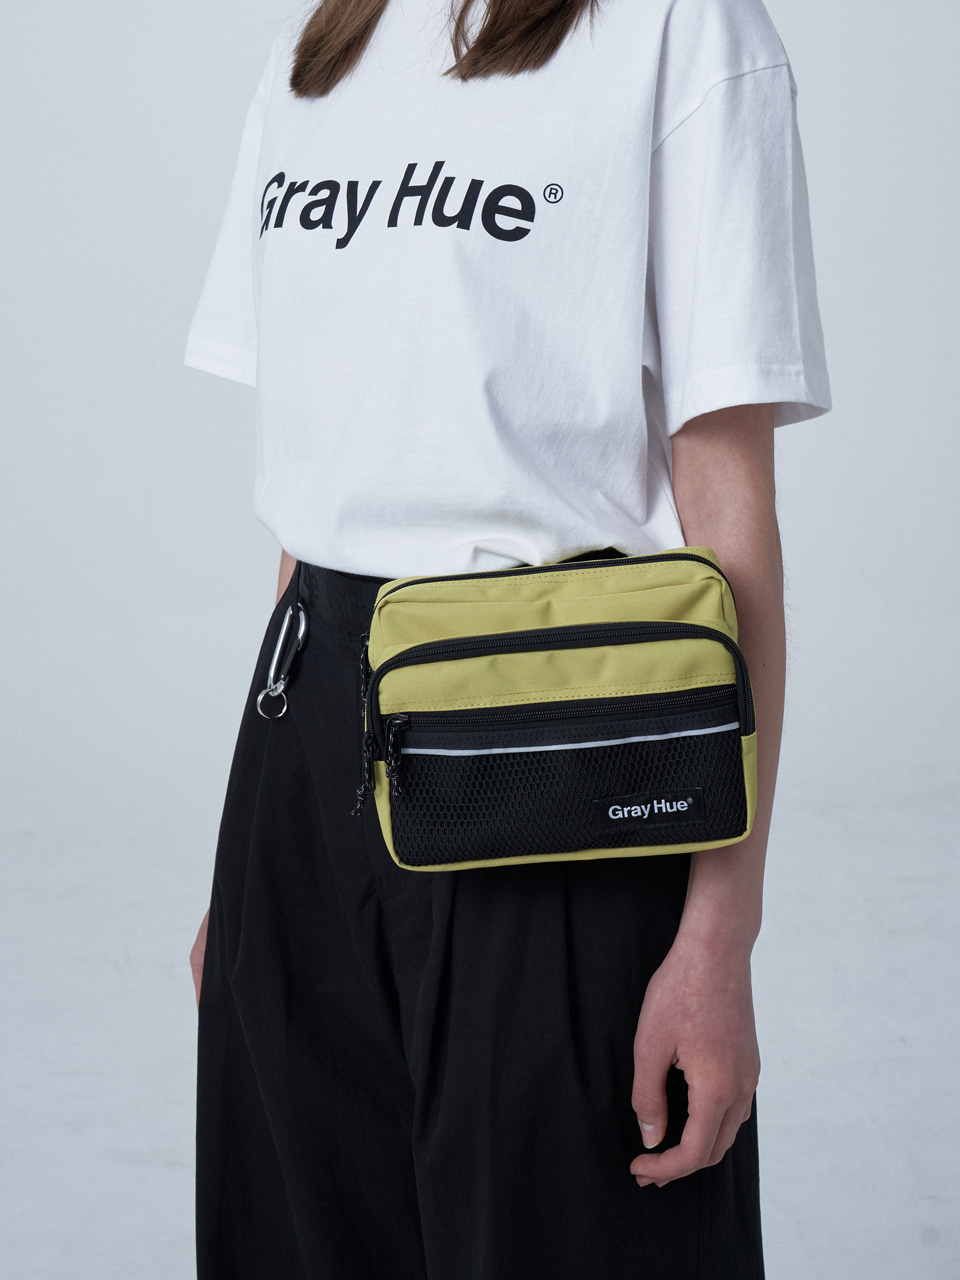 그레이휴RECTANGLE WAIST BAG lime green